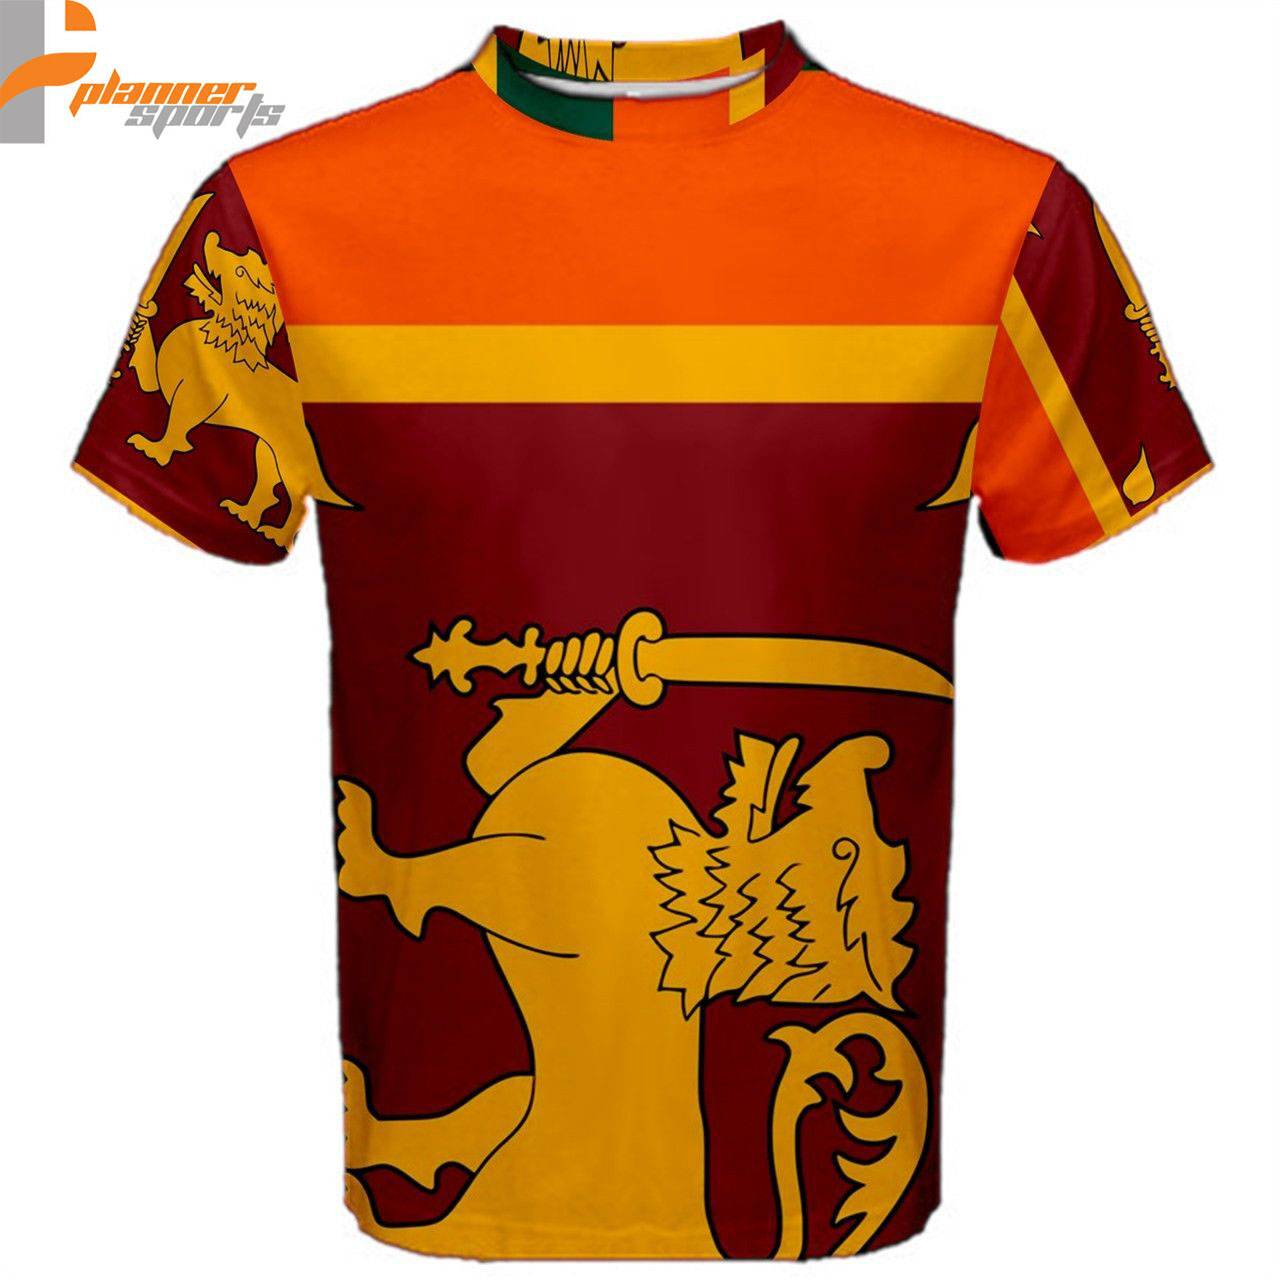 Sri Lanka Sri Lankan Flag Sublimated Sublimation T-Shirt S,M,L,XL,2XL,3XL